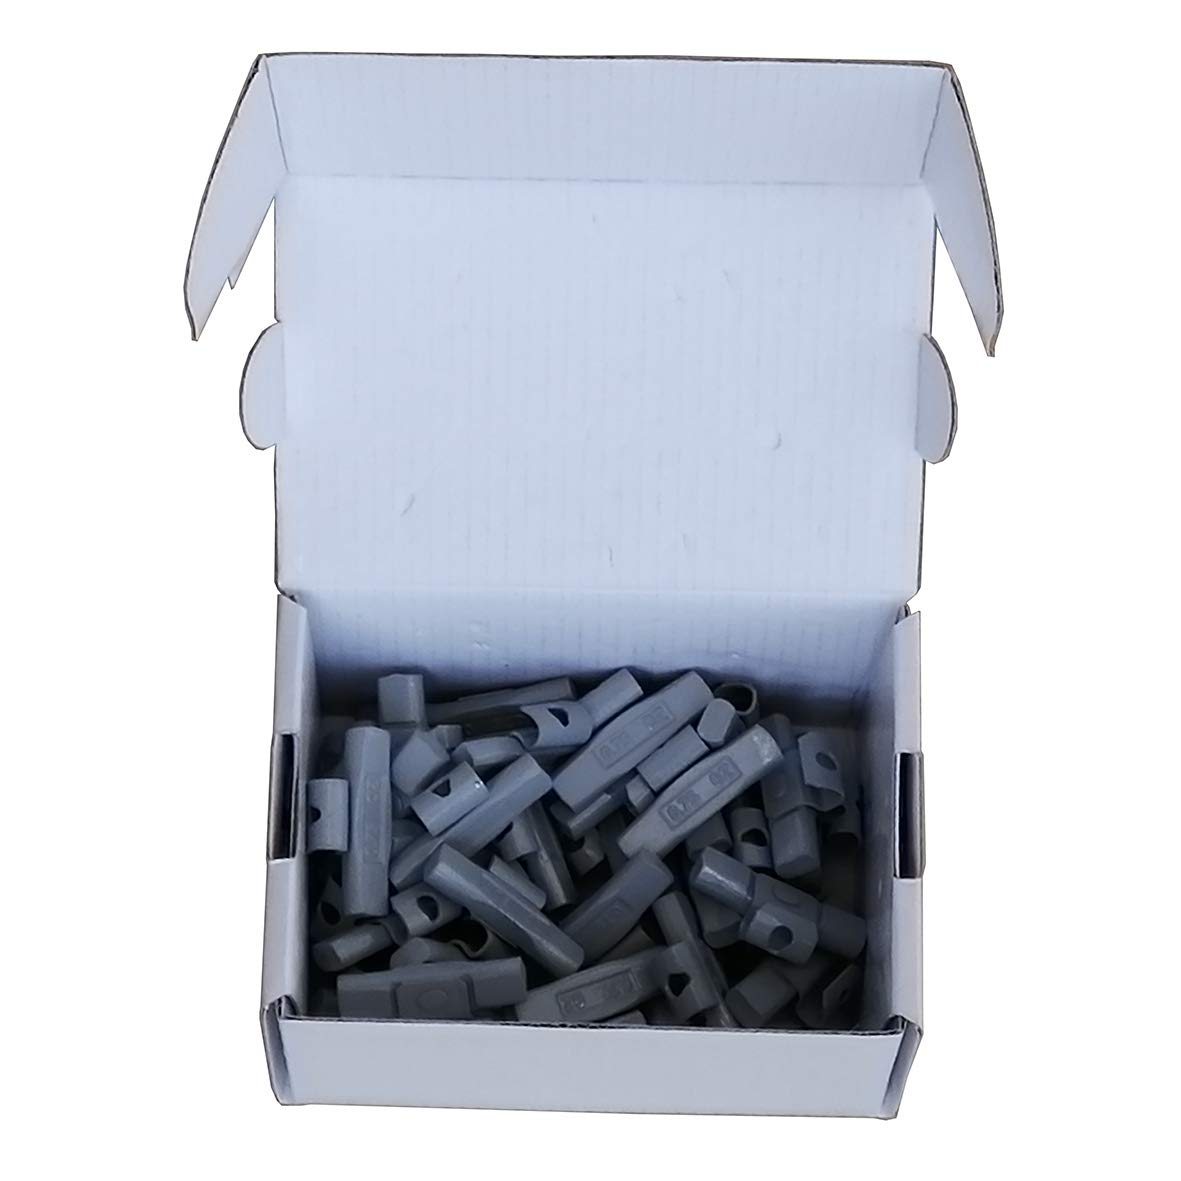 CWA-250a Harzole MC-250 1BOX 30pcs 2.5 oz Lead Free MC Type Wheel Weight